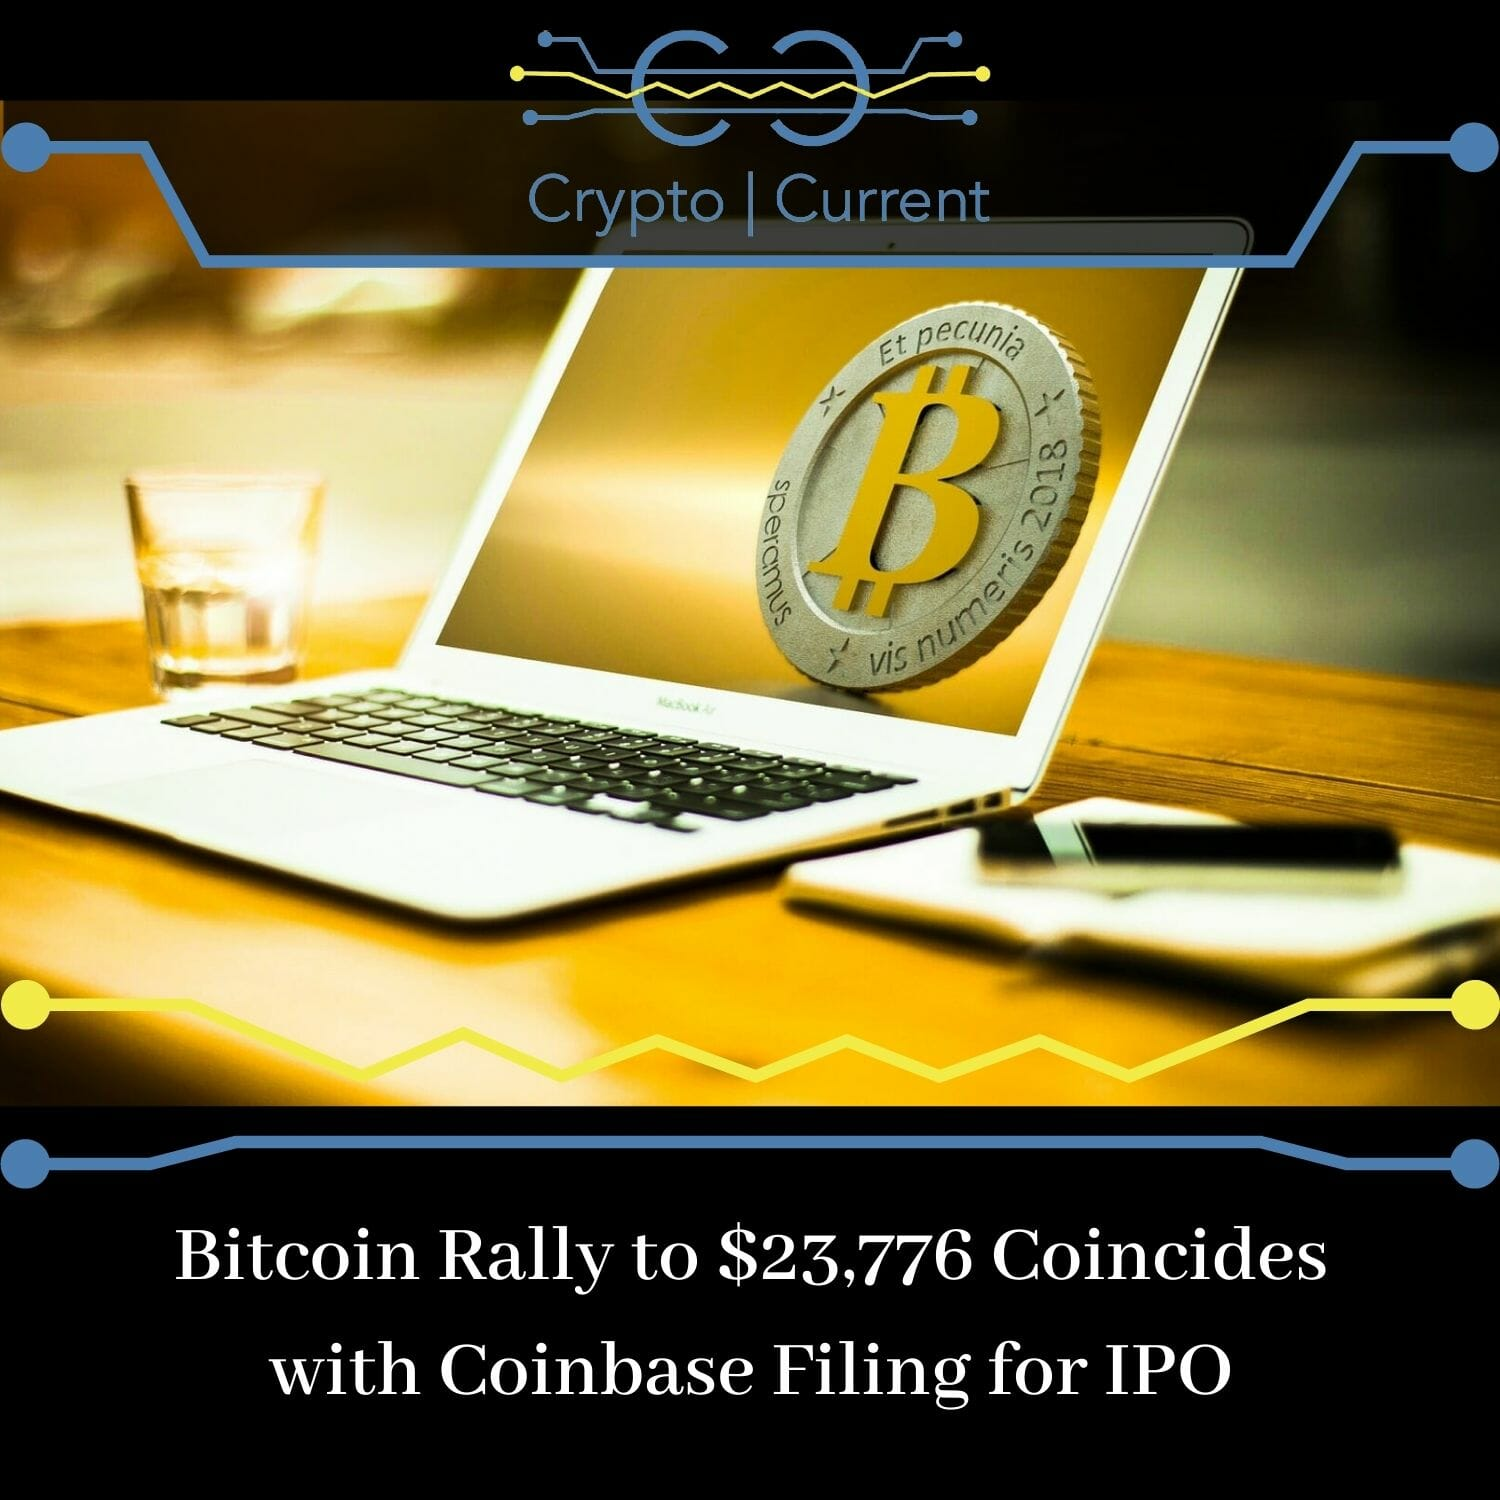 Bitcoin Rally to $23,776 Coincides with Coinbase Filing for IPO